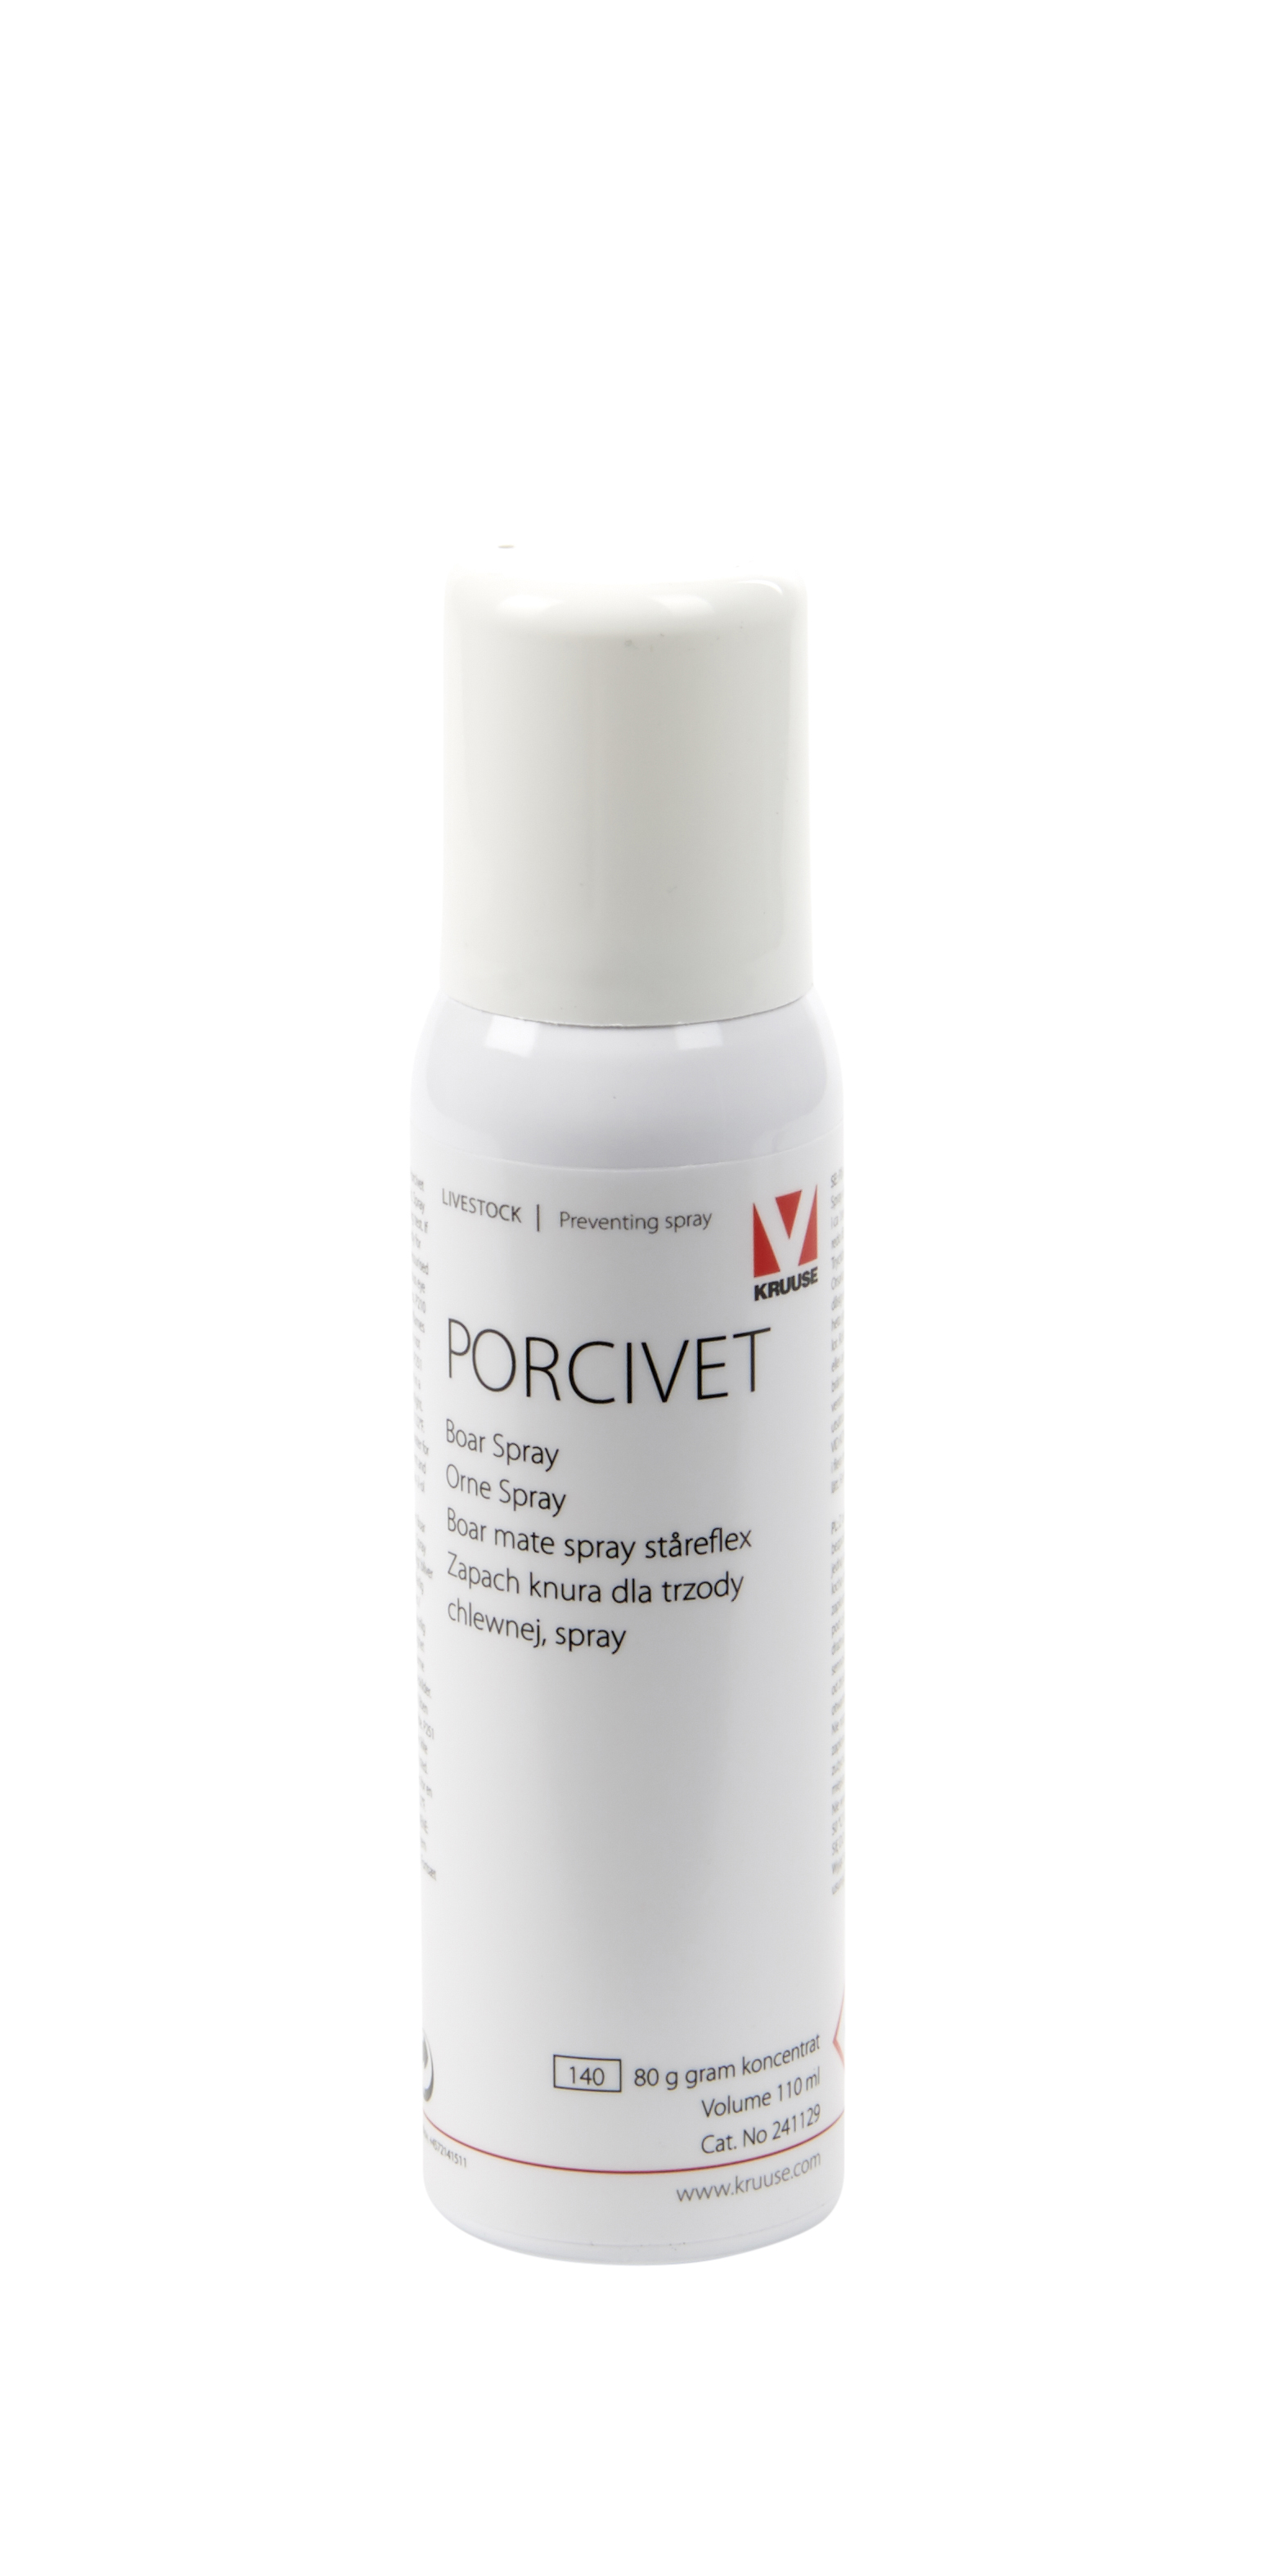 PORCIVET Boar Spray 110 ml, 12/pk